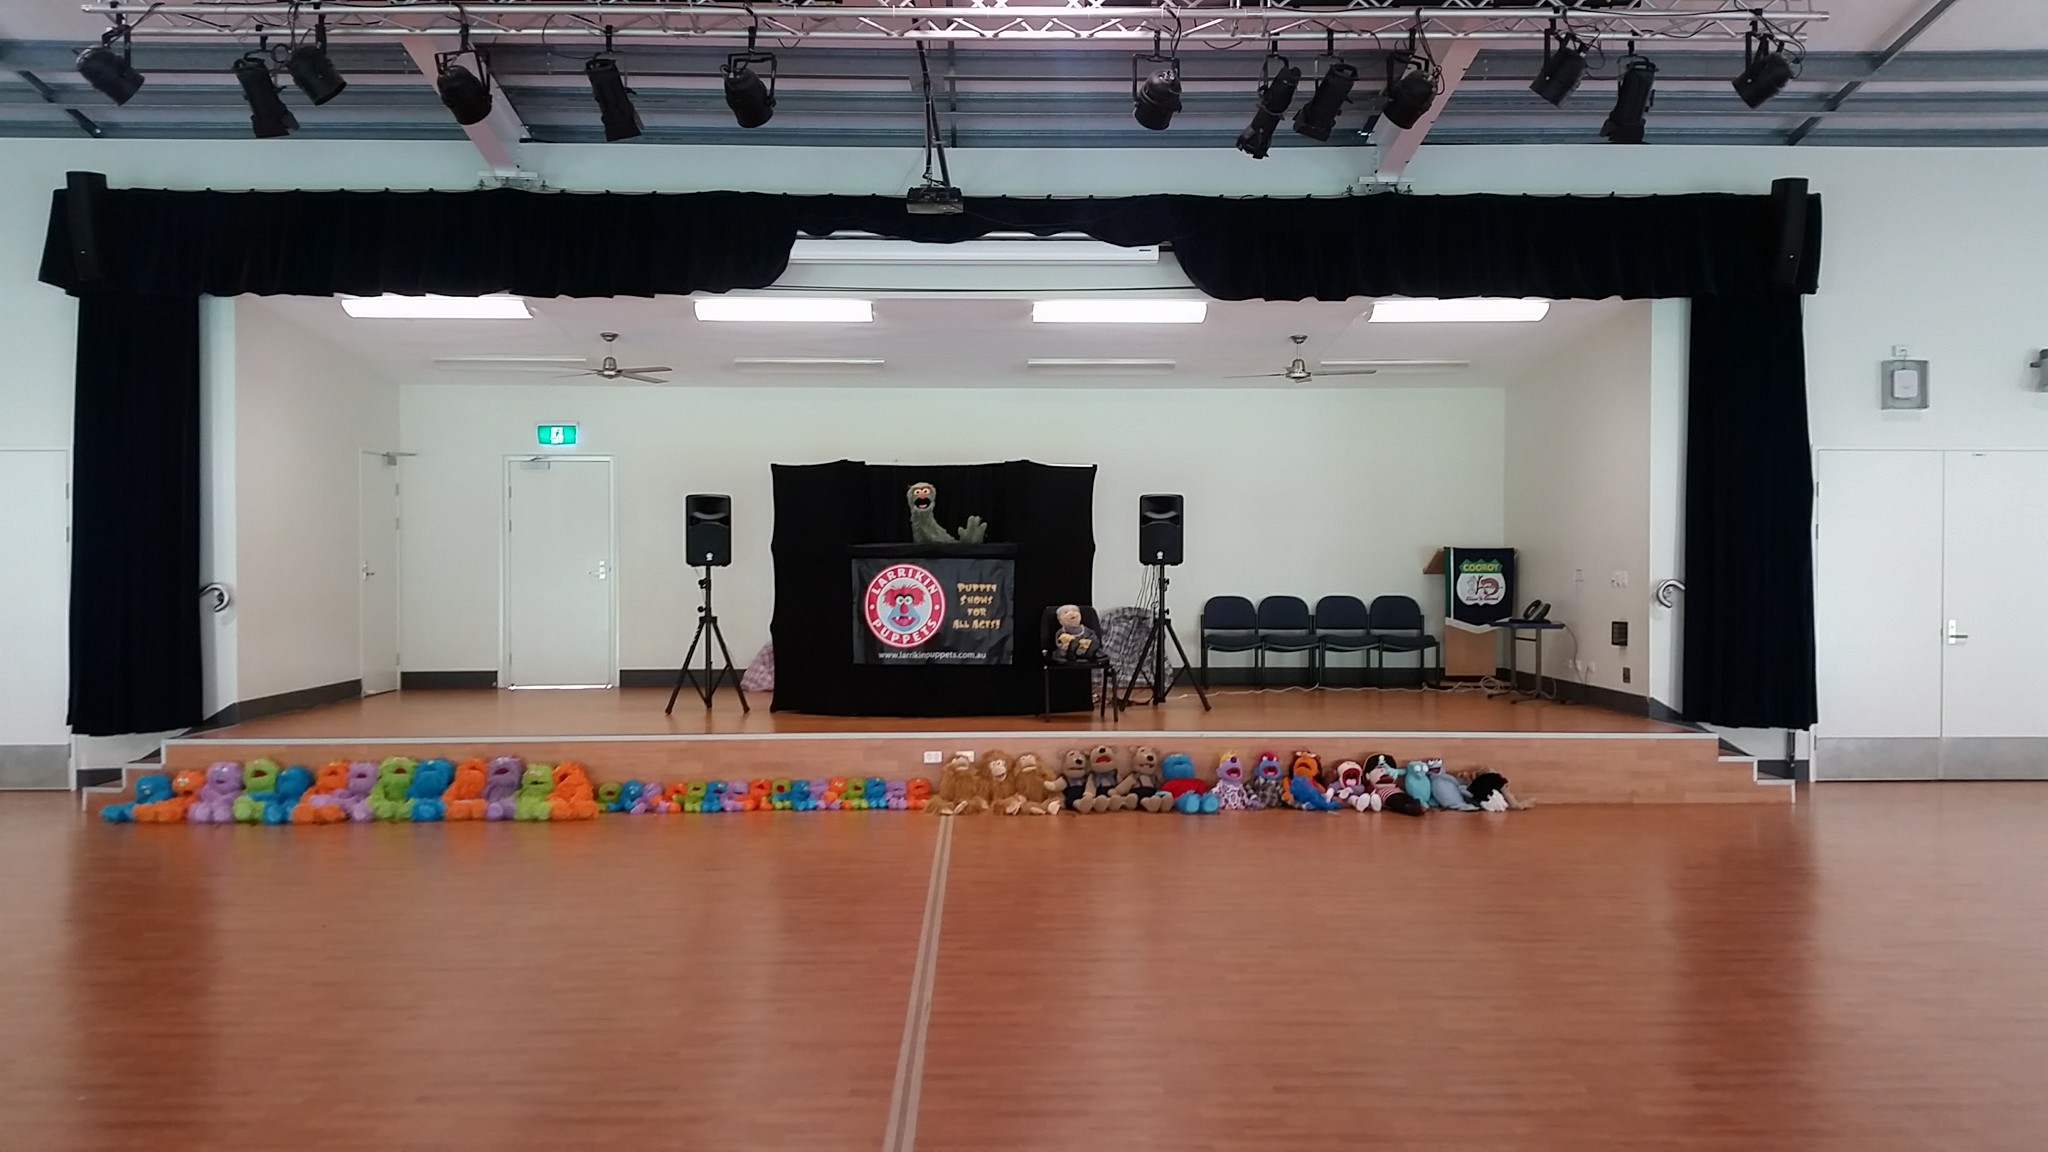 Children's Entertainment, Children's Entertainers, Party Entertainment For Hire | Puppet Show, Puppetry Workshops - Vacation Care OSHC, Cooroy State School OSHC